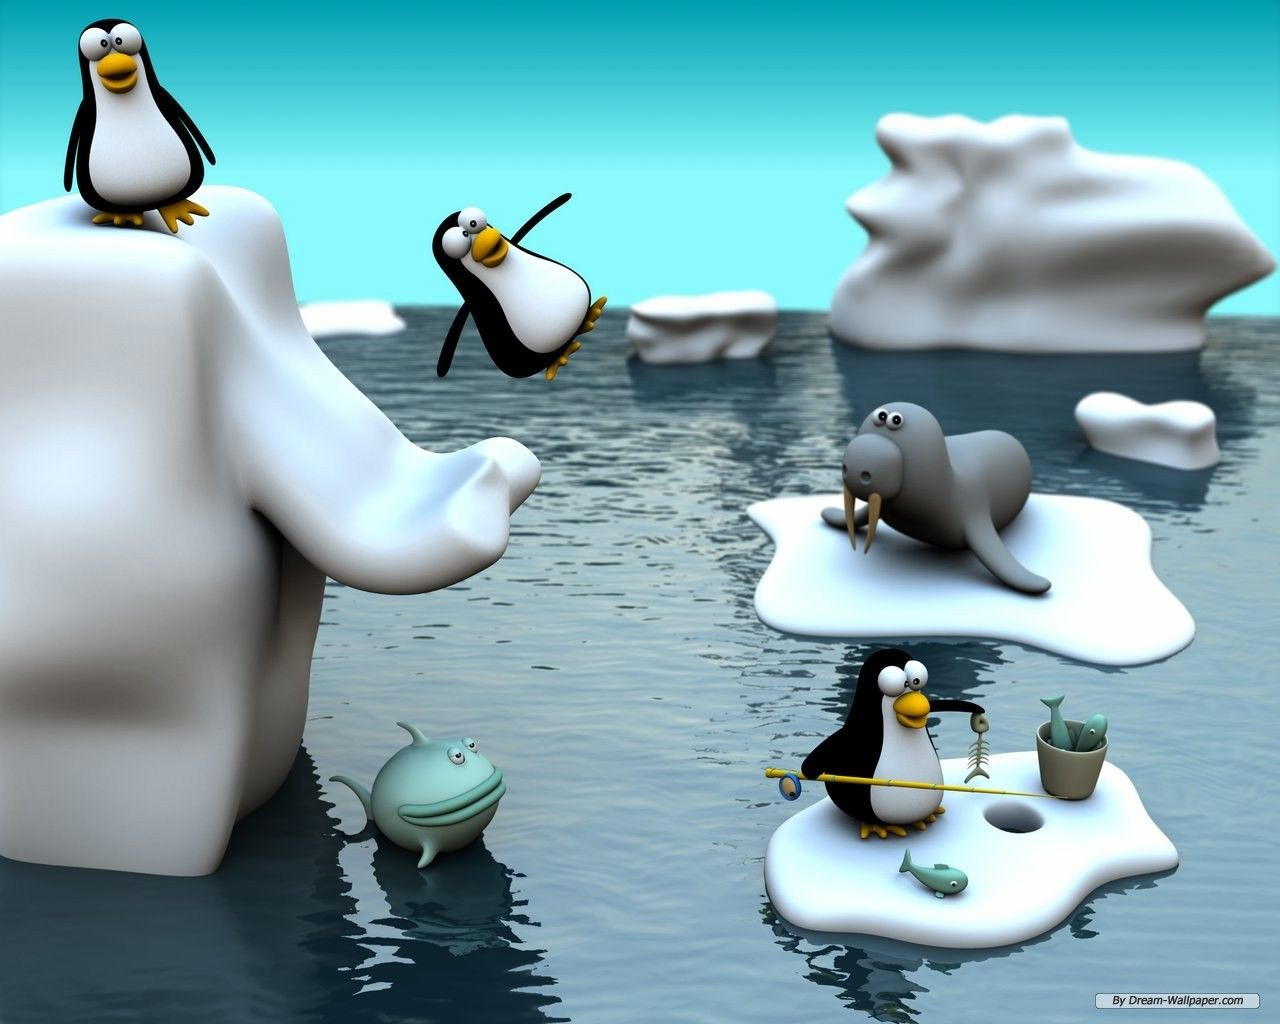 3d animals pictures download - barclays smart women image